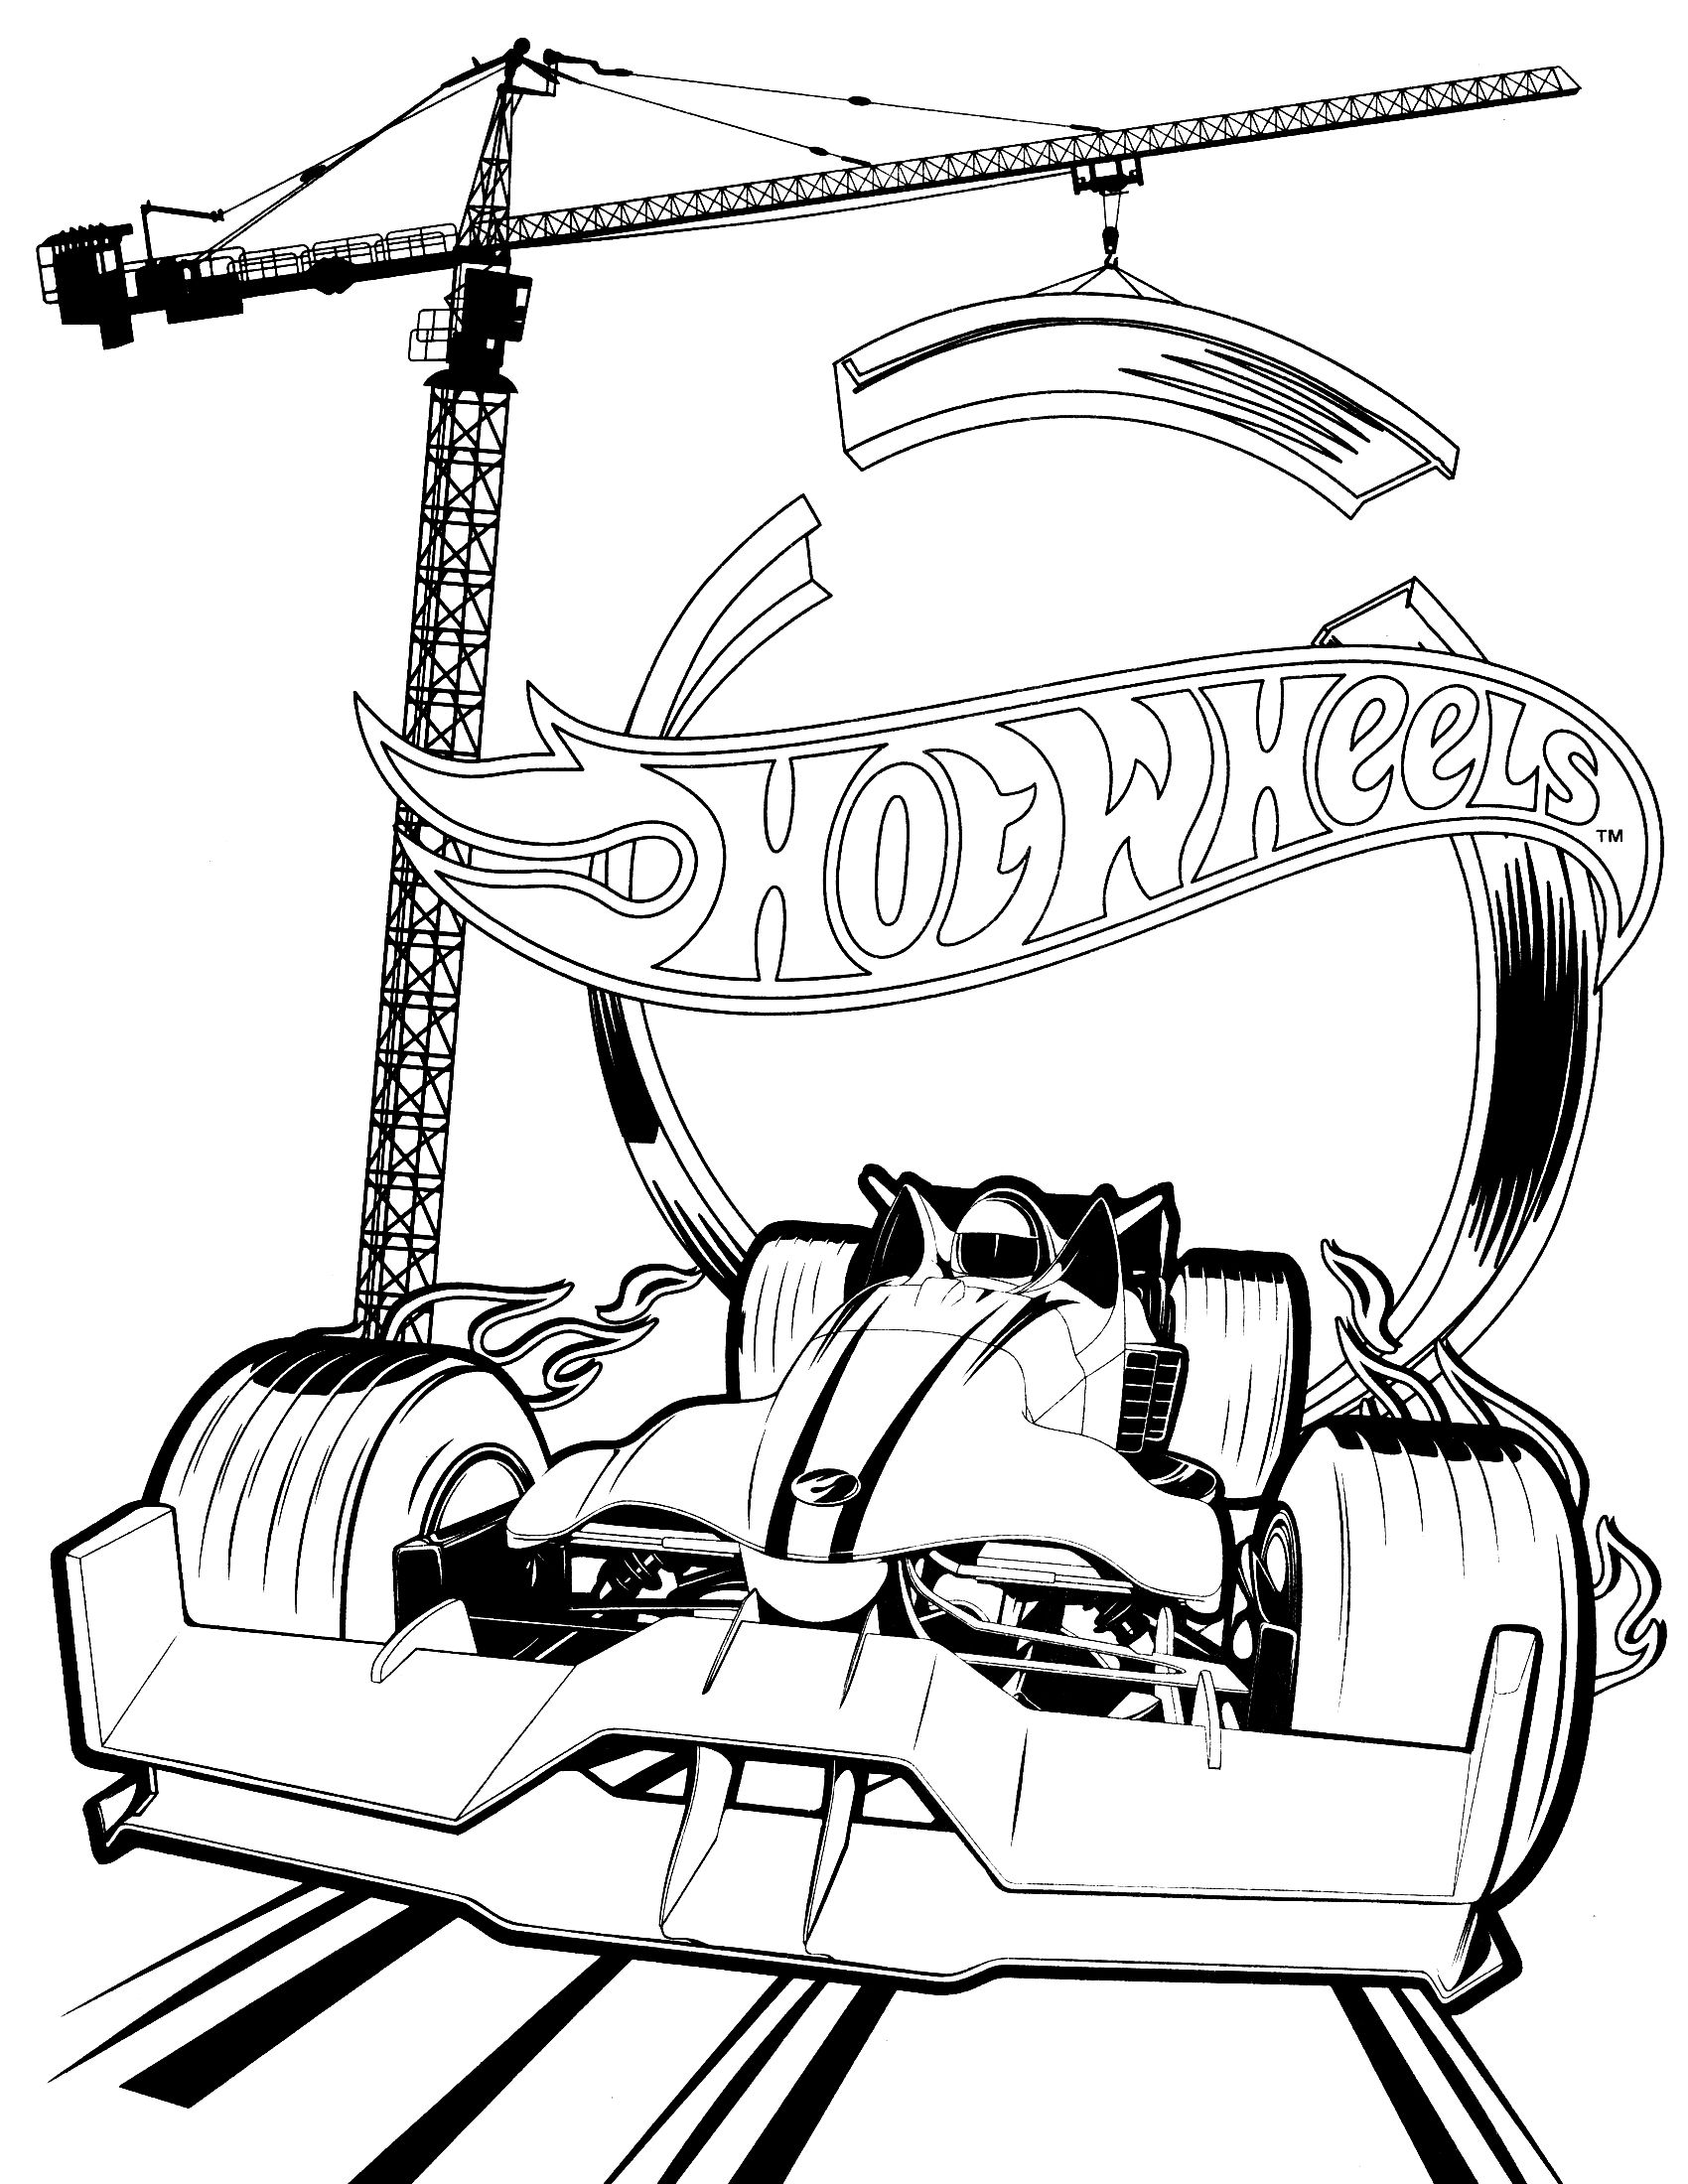 Online coloring hot wheels - Sport Car Racing Coloring Page Race Car Car Coloring Pages Race Car Pinterest Sports Car Racing And Craft